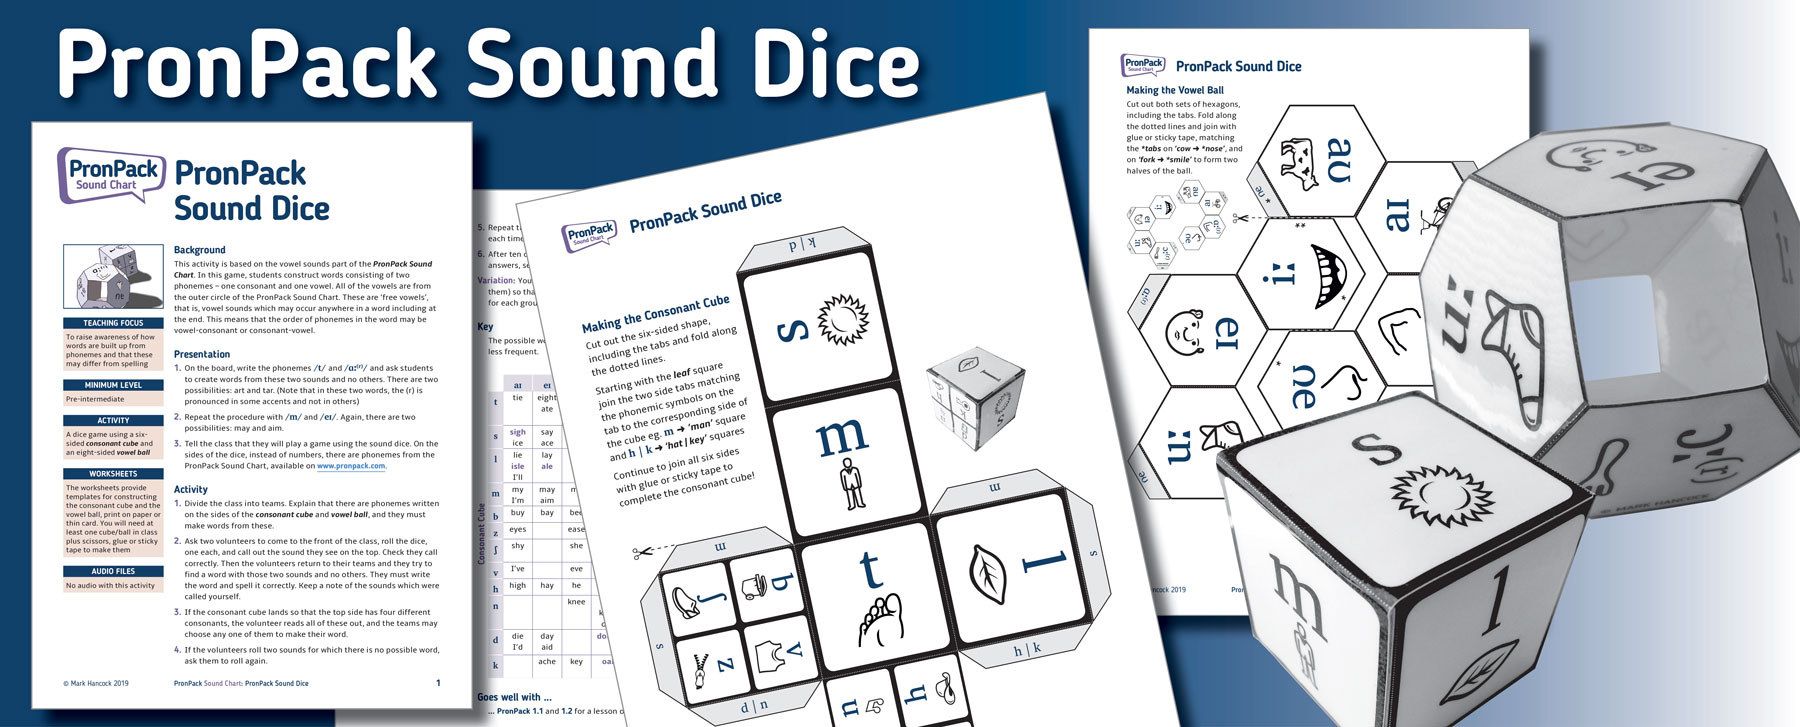 PronPack Sound Dice - Extra activity based on the PronPack Sound Chart for use in class